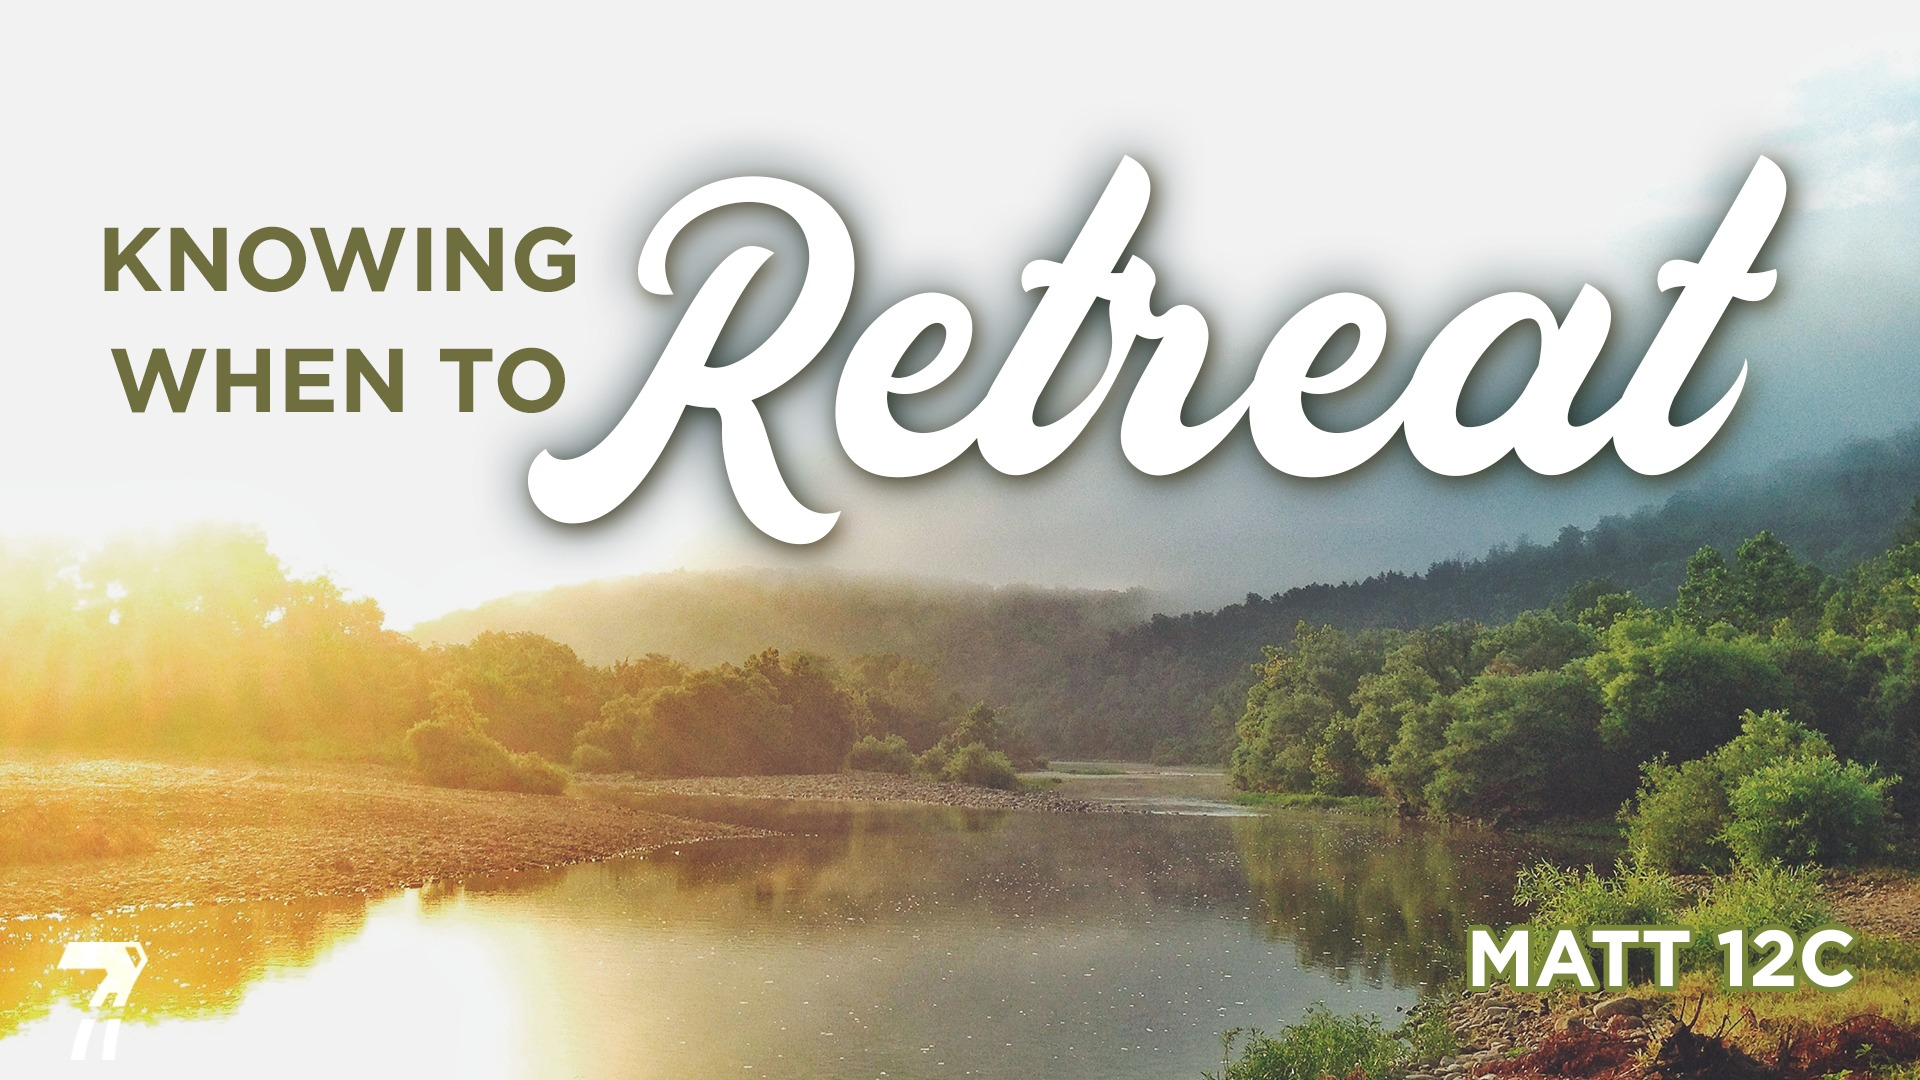 Matthew 12c – Knowing When To Retreat